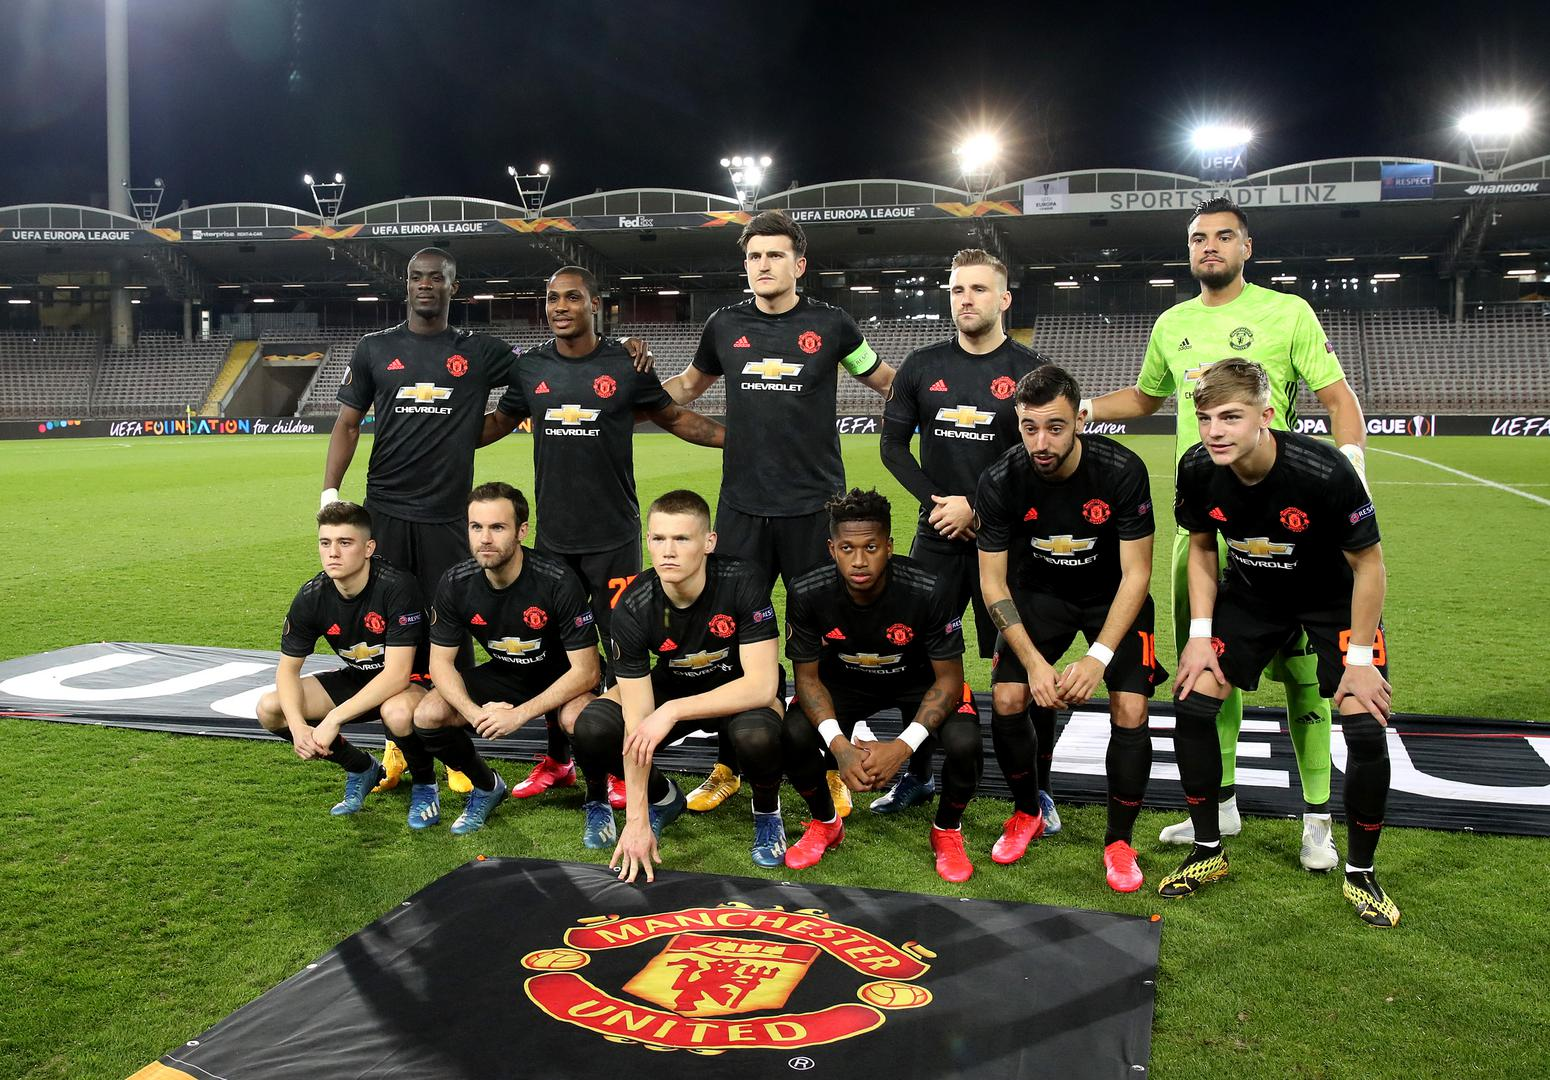 Manchester United players line up before kick-off against LASK